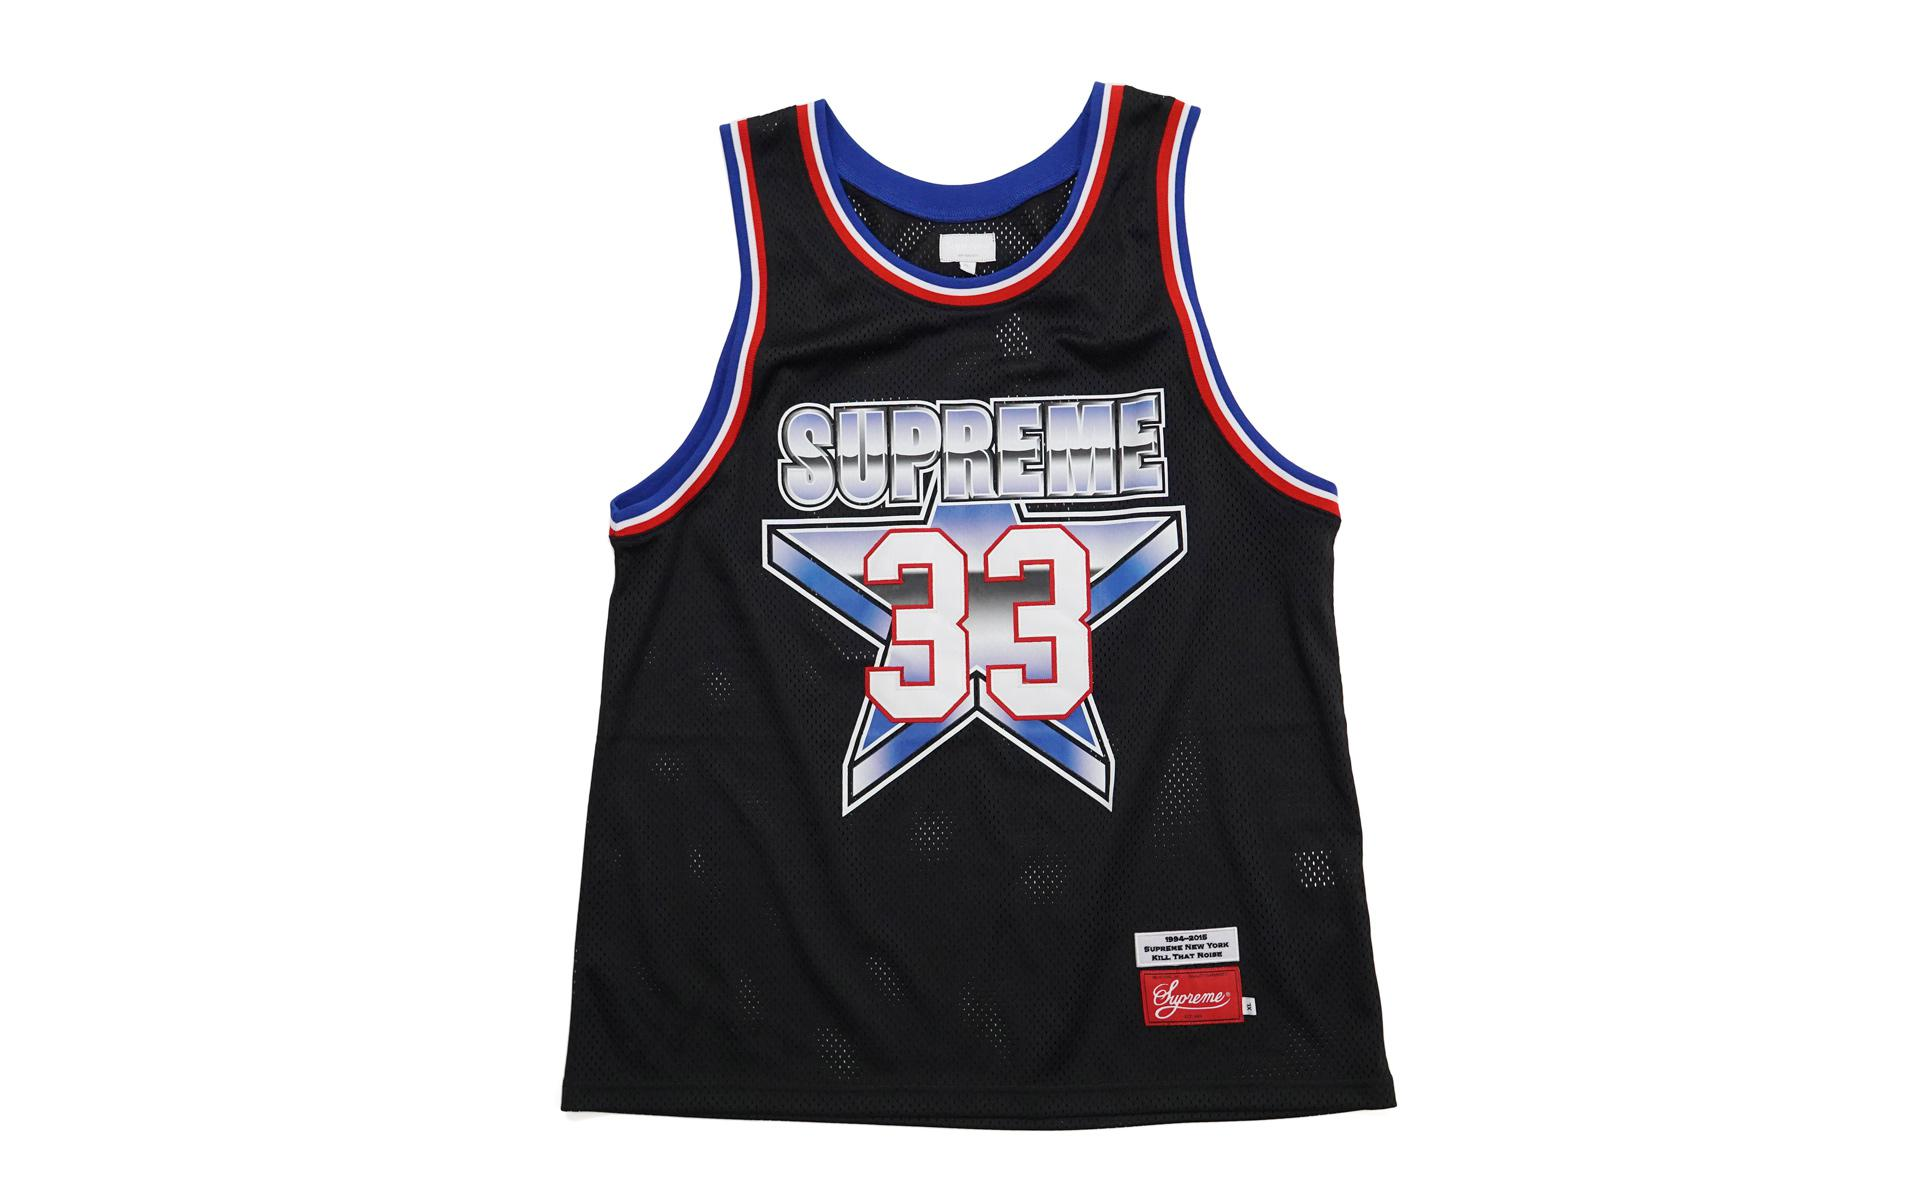 e5c7a1b22a5 Supreme All Star Basketball Jersey Black in Black for Men - Lyst